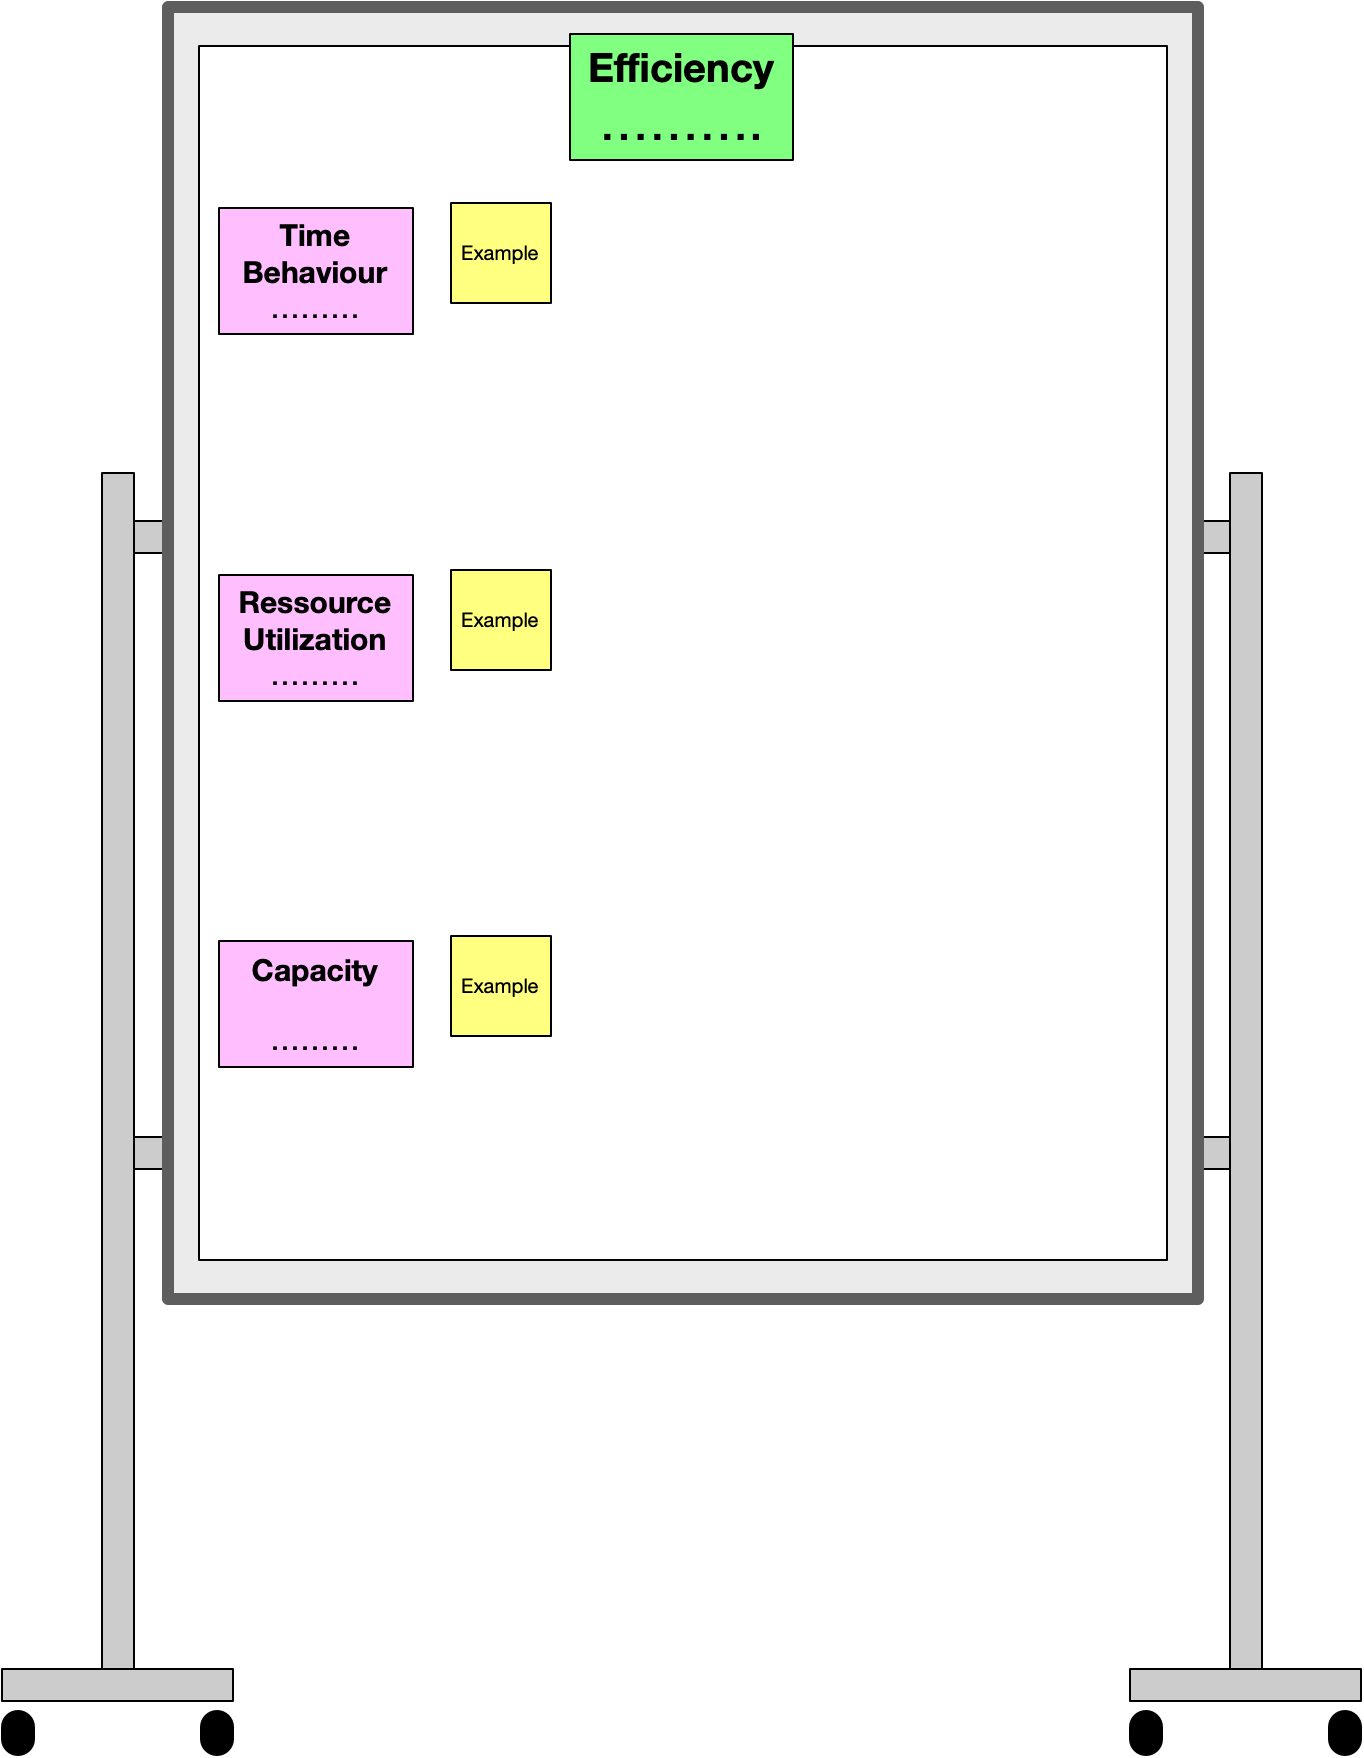 Preparation of a pinboard for a main category of the quality model